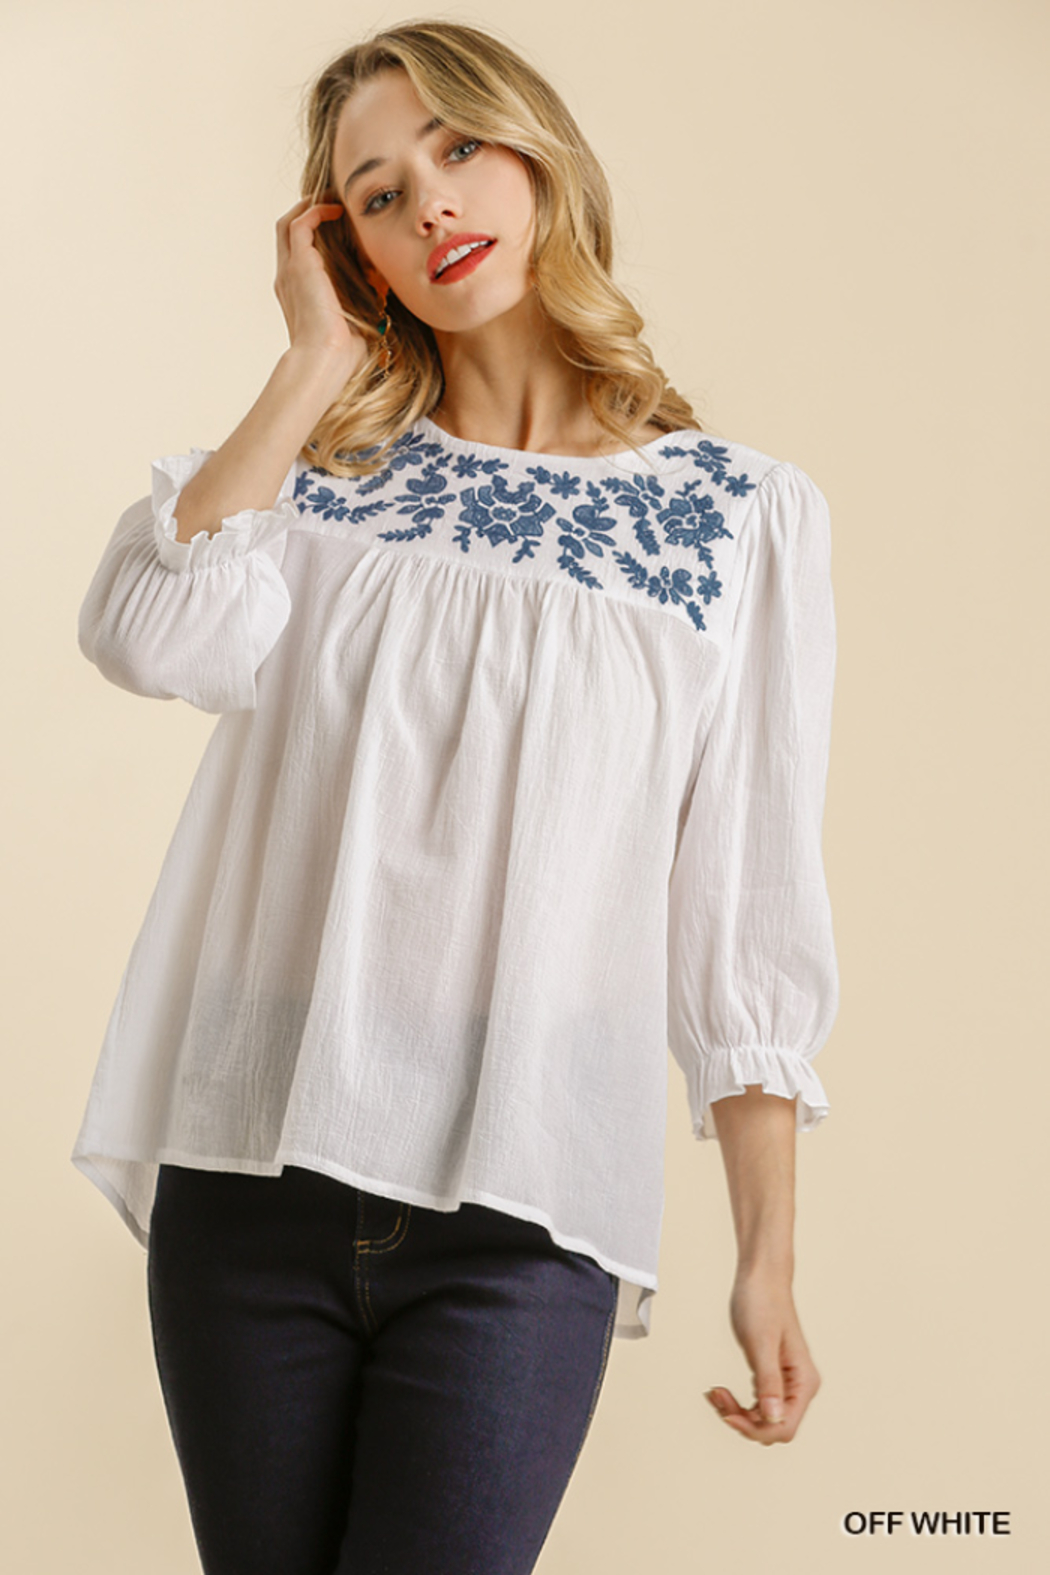 umgee  FLORAL EMBROIDERED YOKE 3/4 CUFF SLV TOP - Main Image